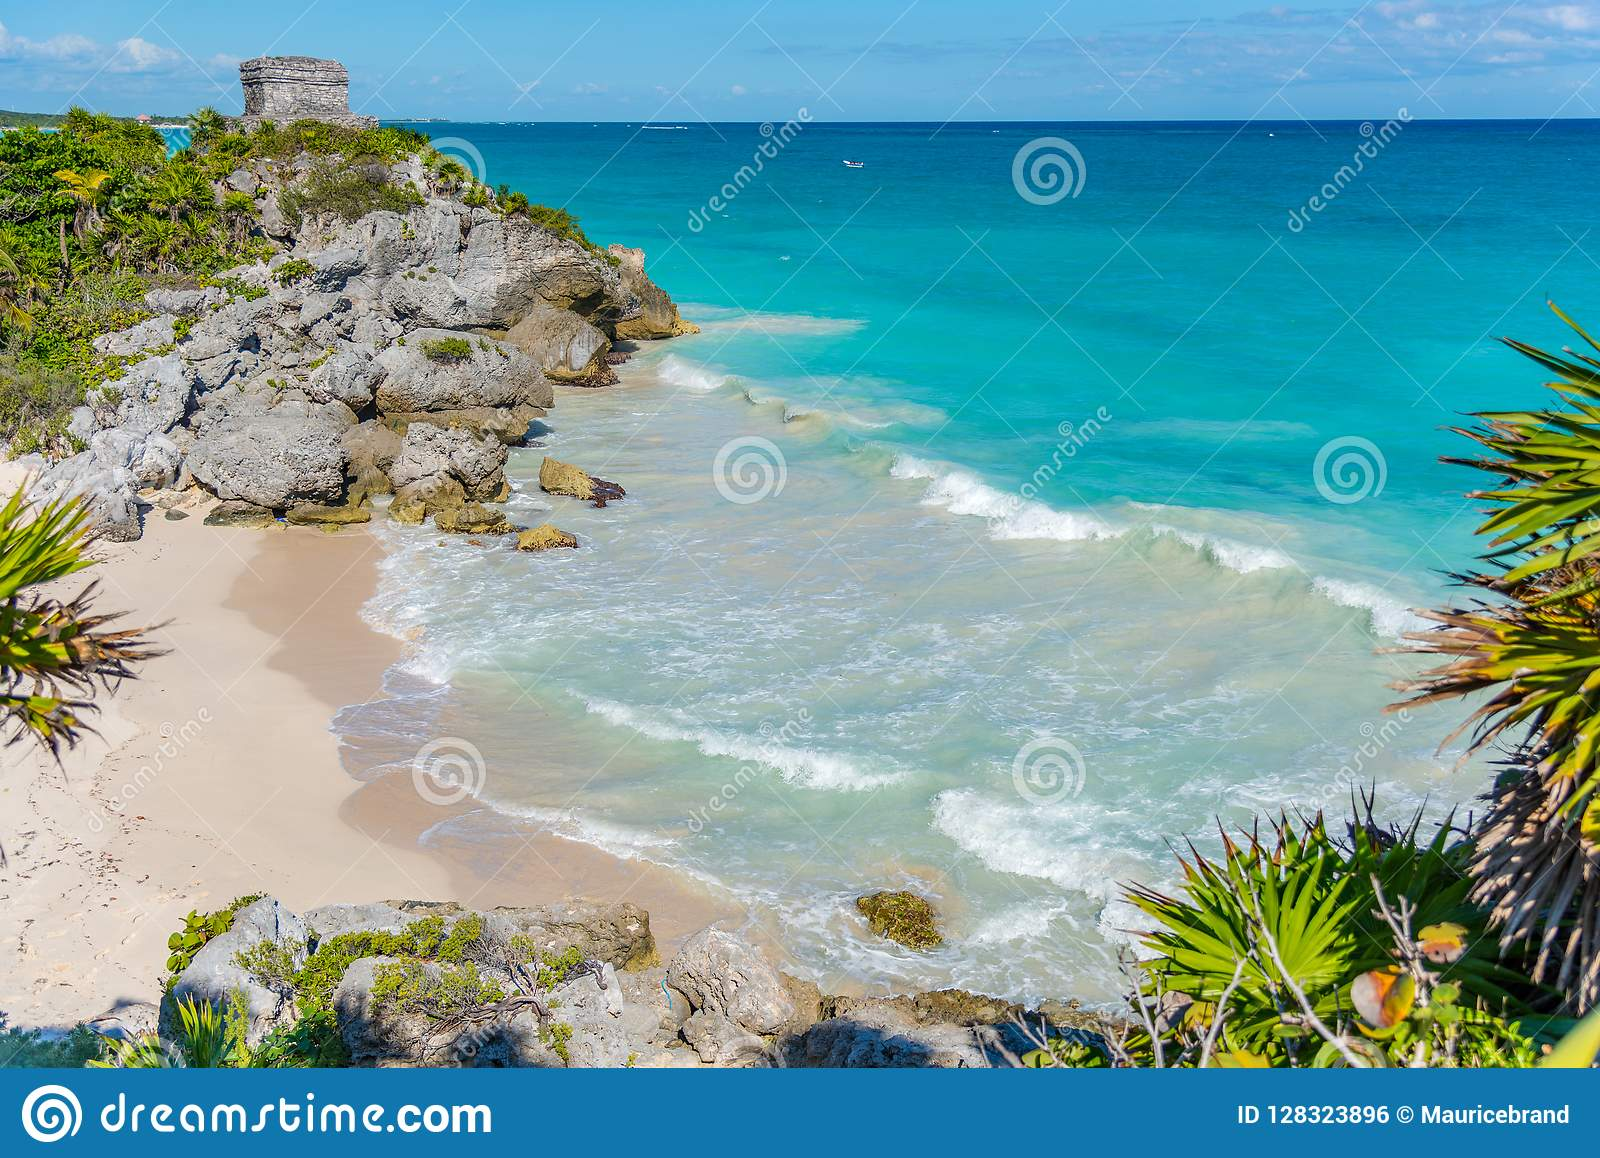 Tulum beach in mexico america